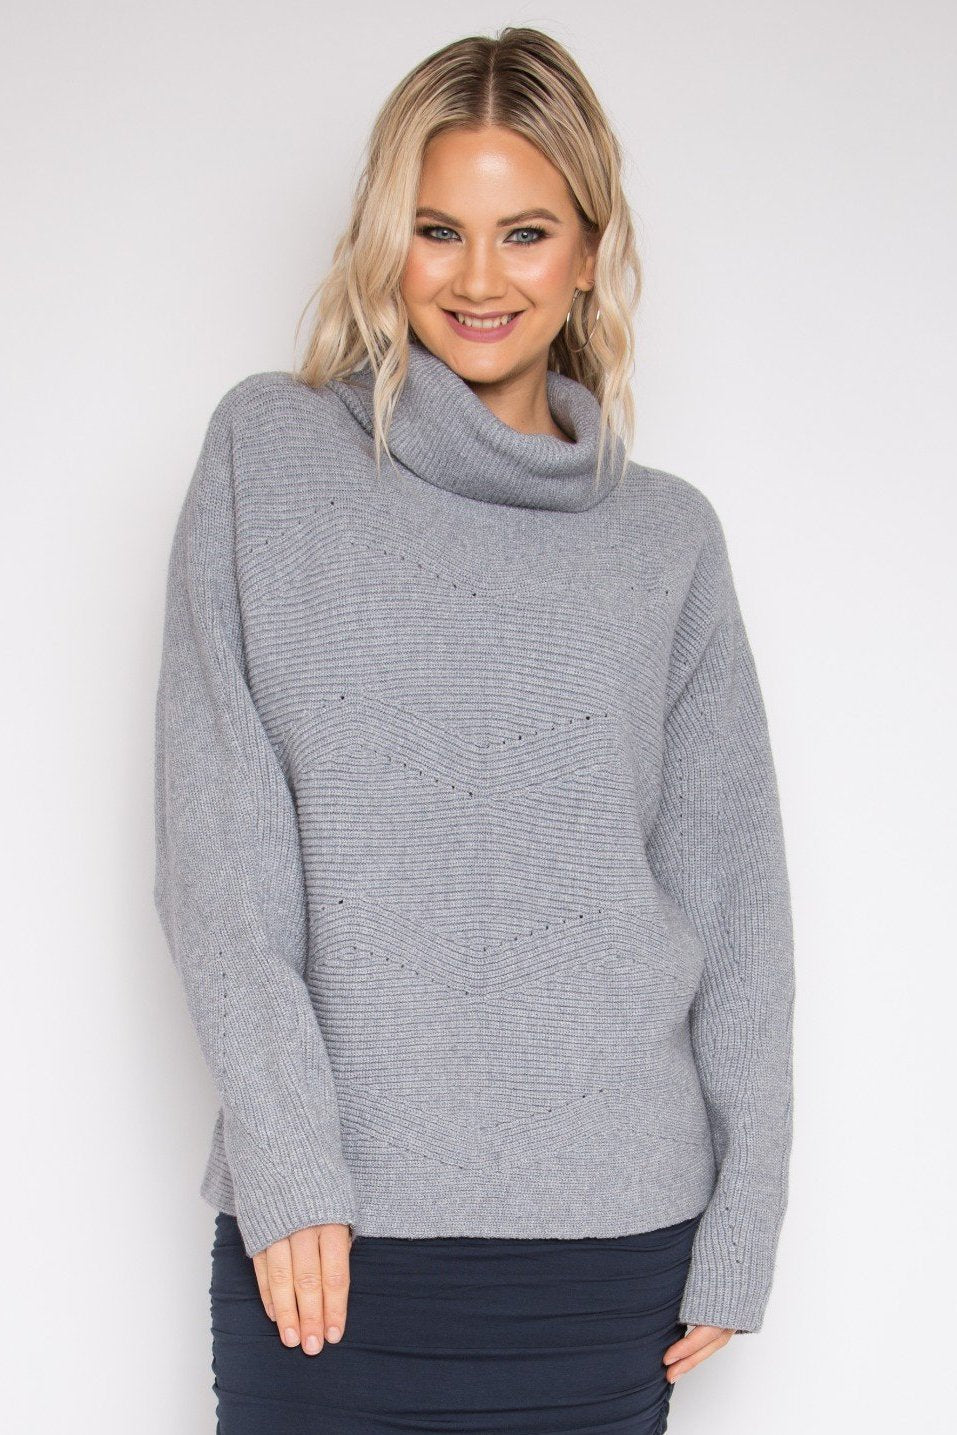 Cosy Knit Top in Ash